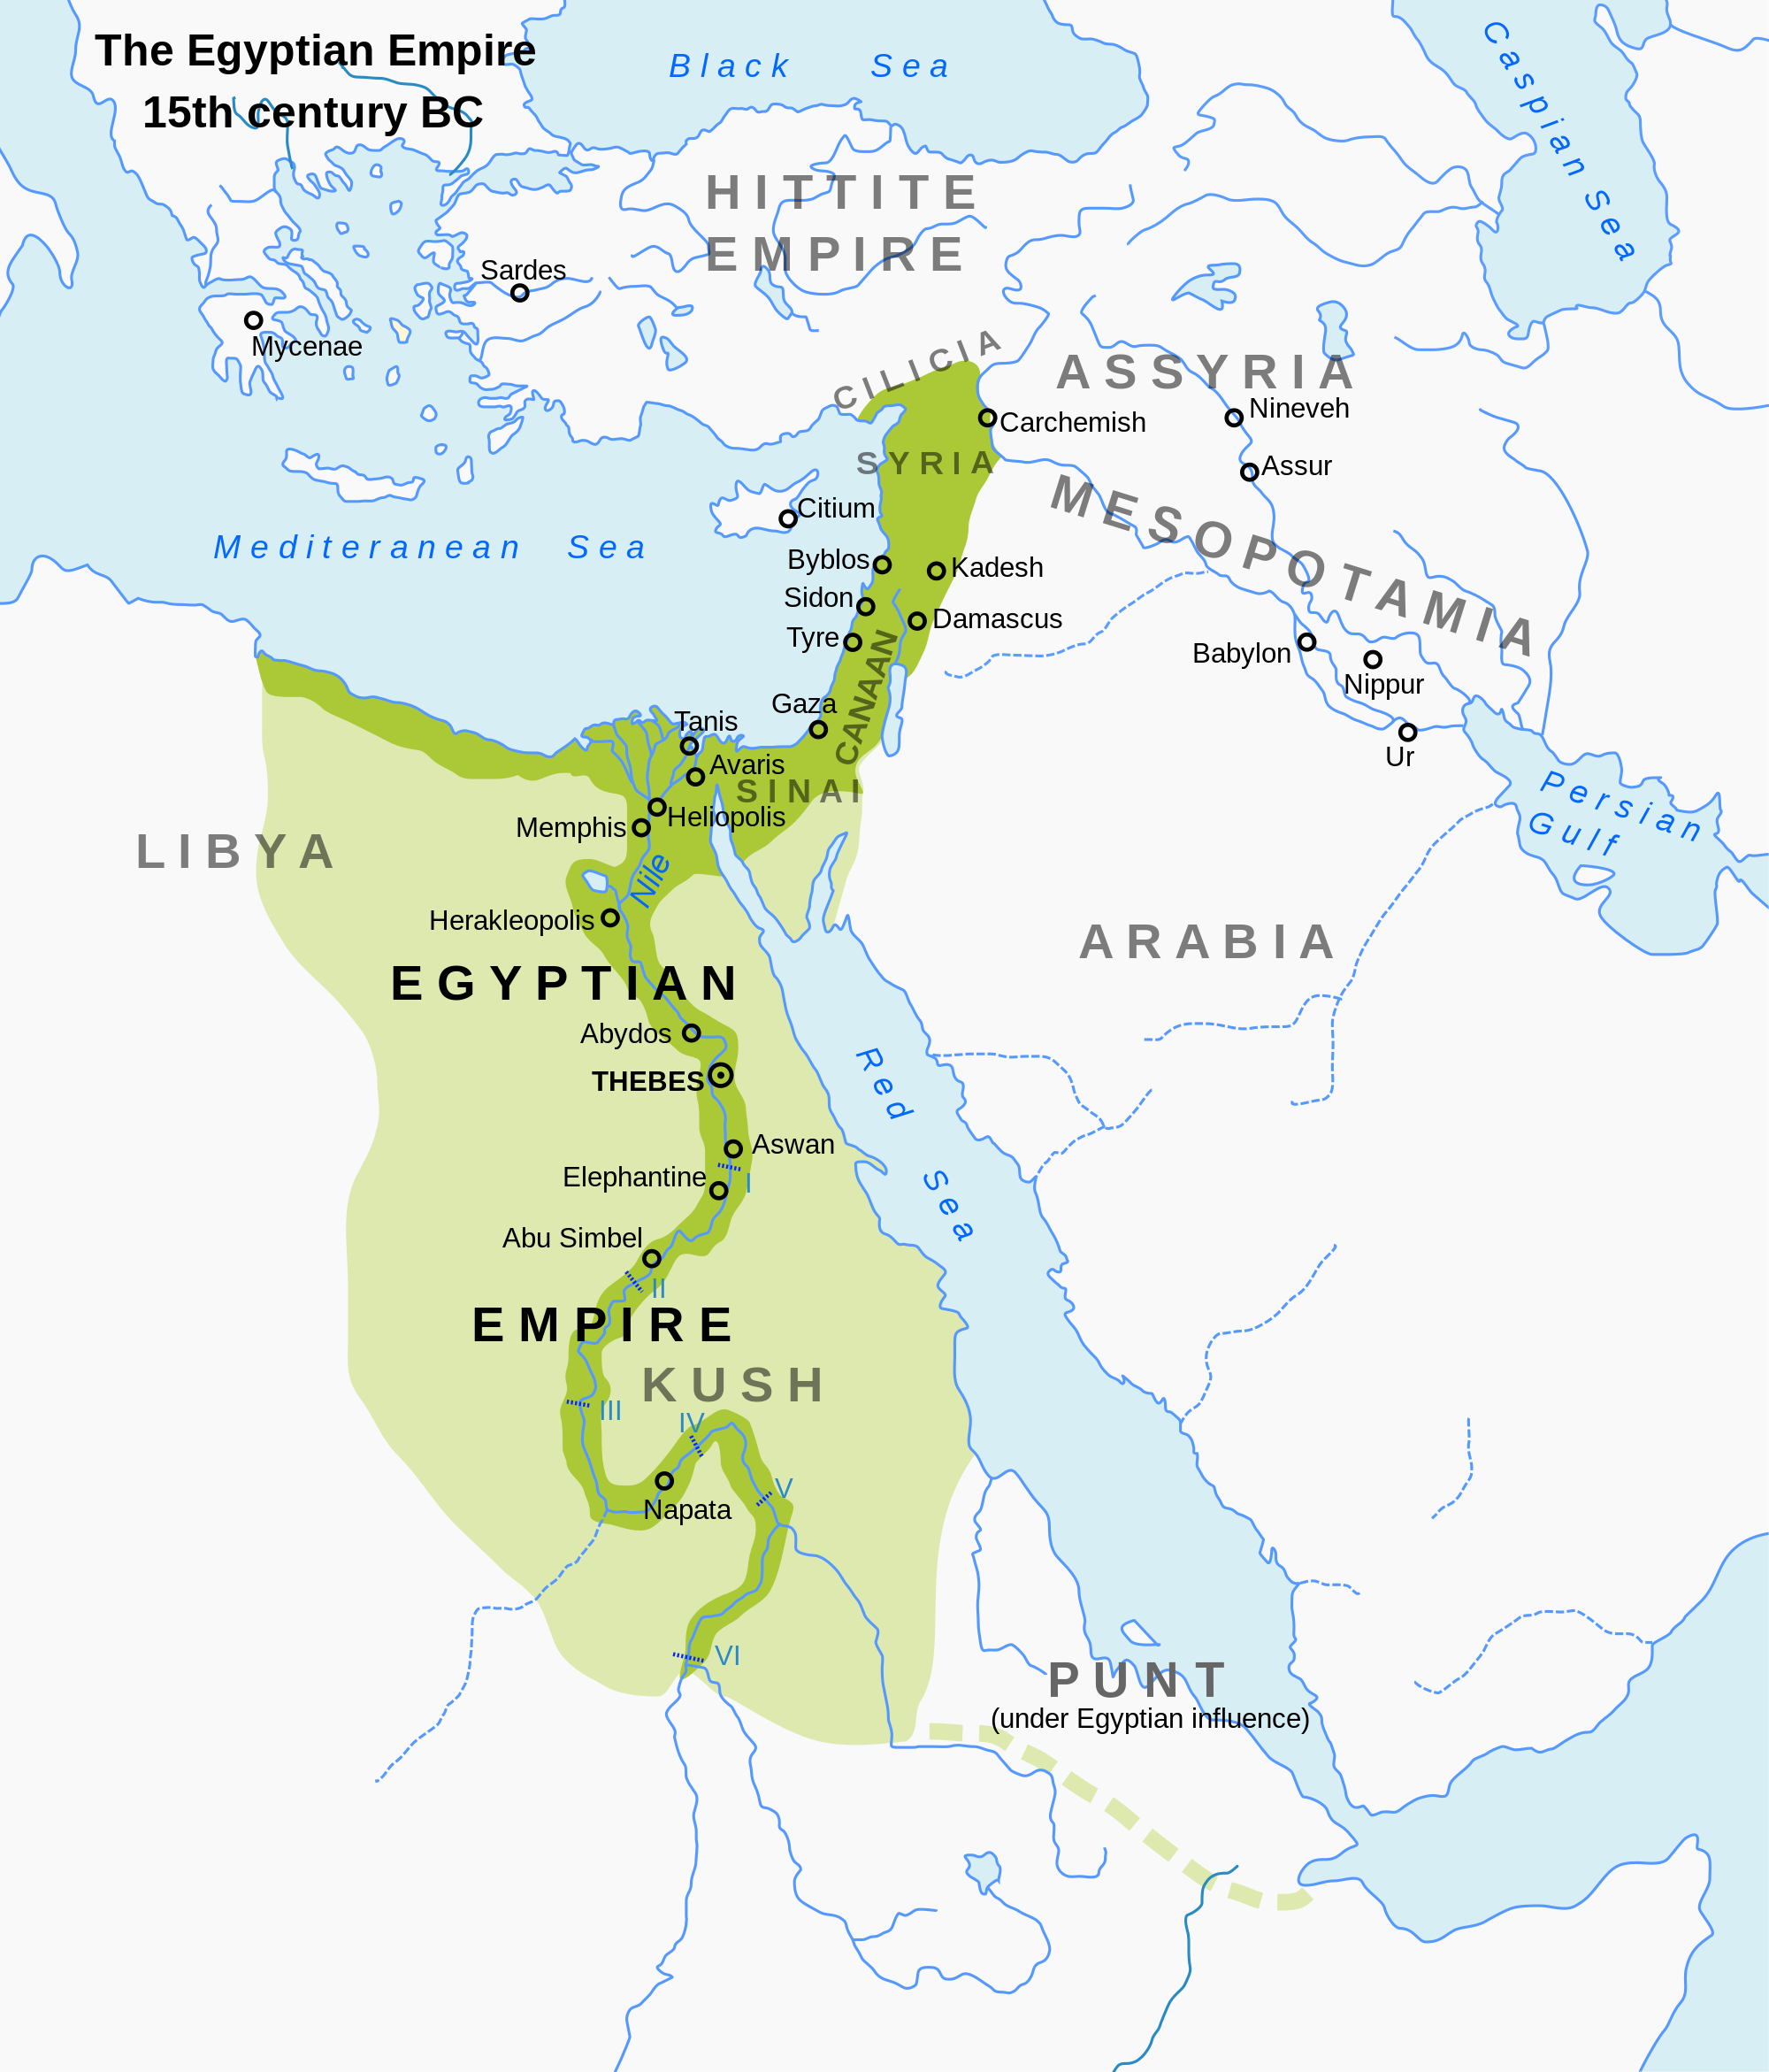 Egypt during its Imperialistic New Kingdom, c. 1400 BCE | Author: Jeff Dahl | Source: Wikimedia Commons | License: CC BY-SA 3.0